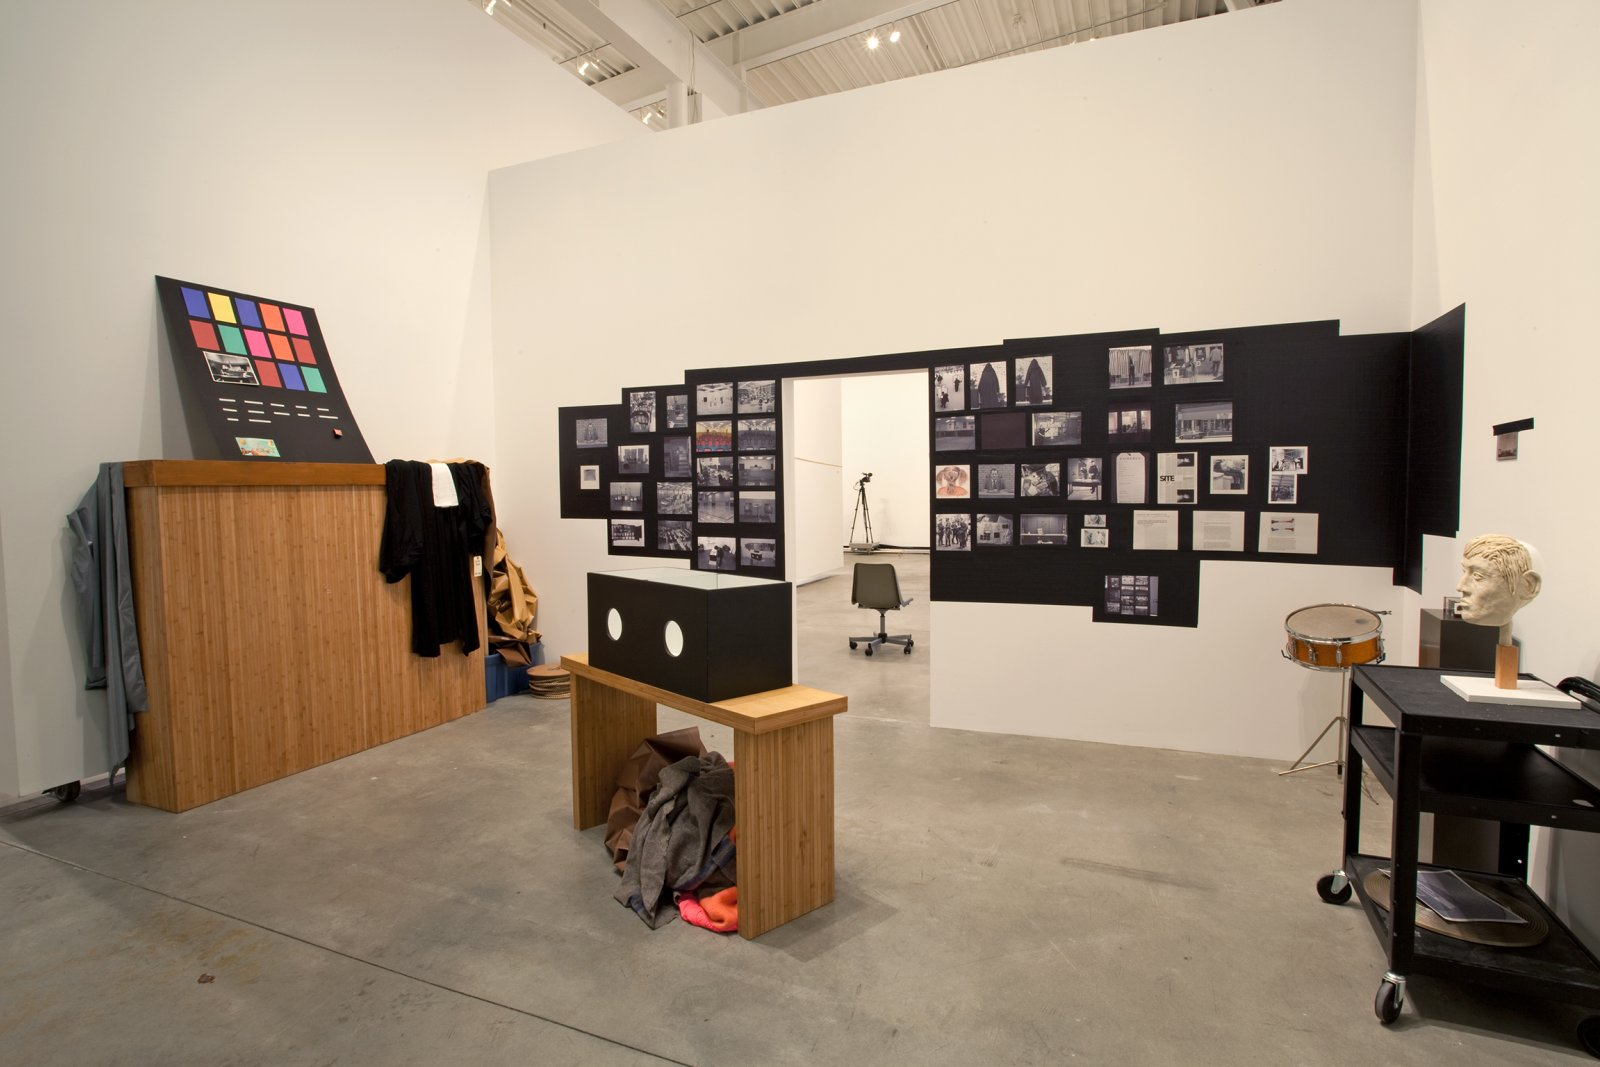 Judy Radul, World Rehearsal Court, 2009, mixed media, dimensions variable. Installation view, World Rehearsal Court, Morris and Helen Belkin Art Gallery, Vancouver, 2009 by Judy Radul